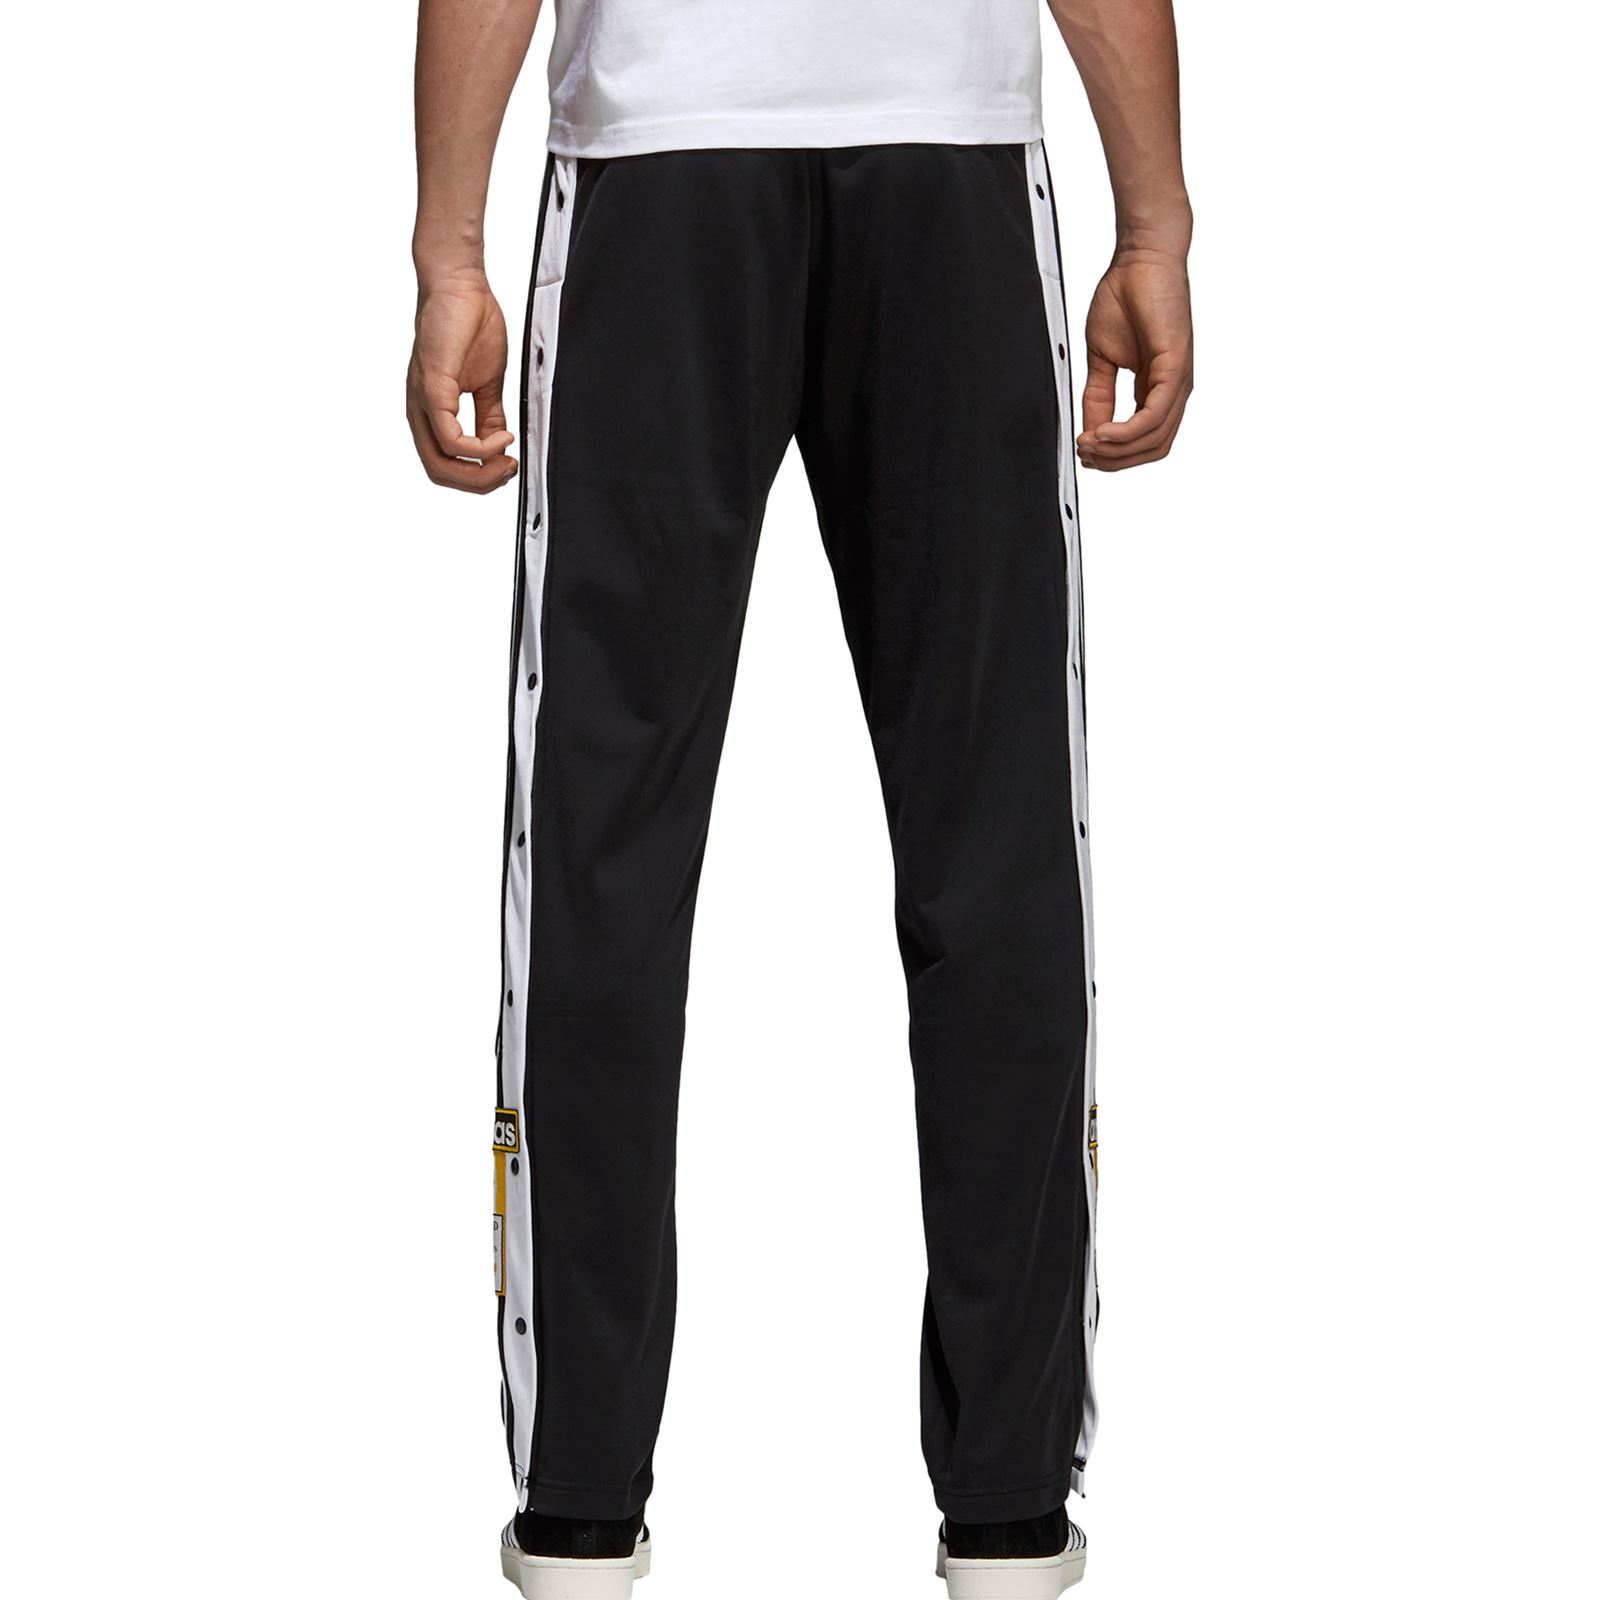 Jogging Noir Pantalon Adidas Adibreak Brandalley Originals qOPcRw6